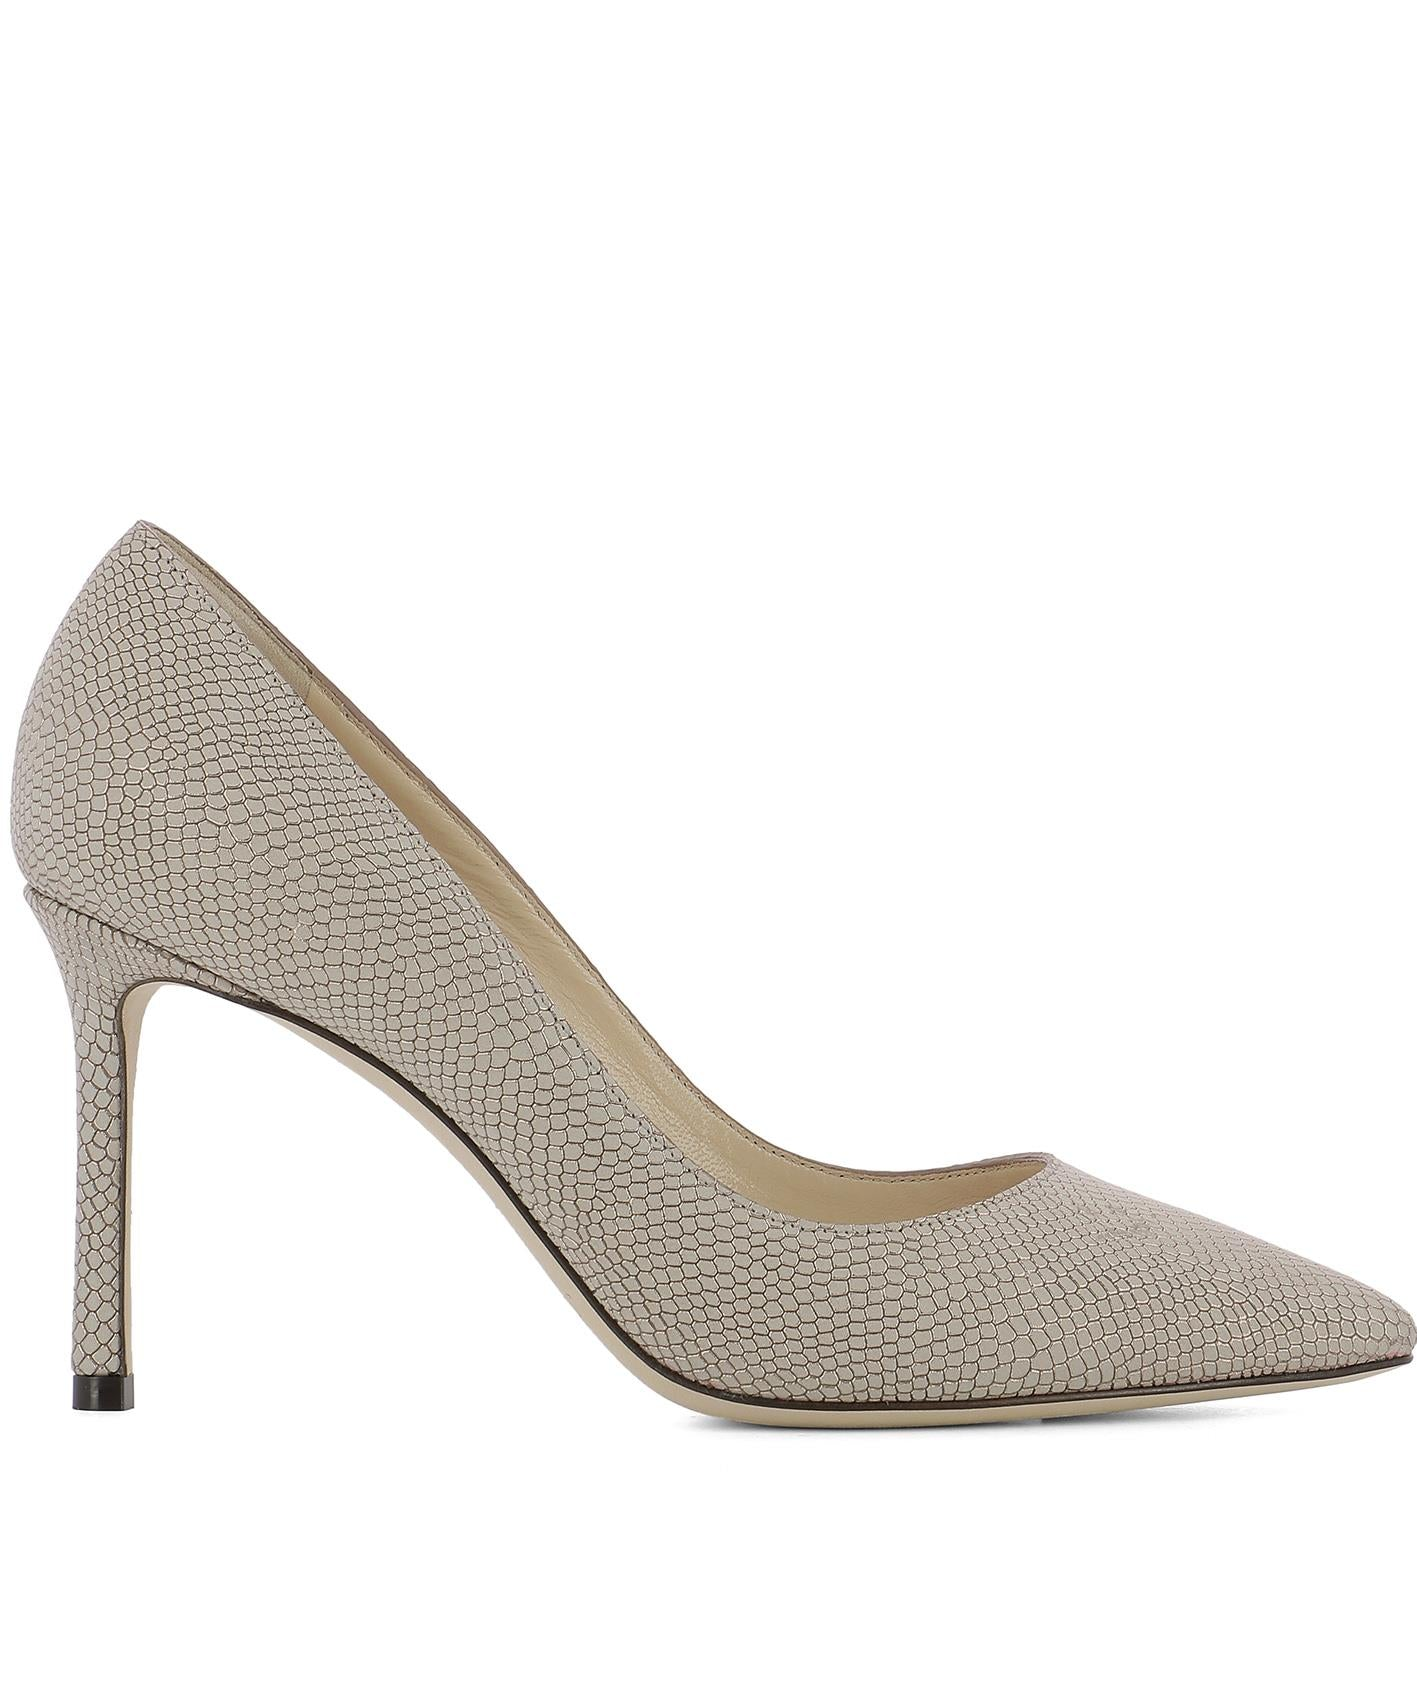 JIMMY CHOO ROMY 85 POINTY PUMPS